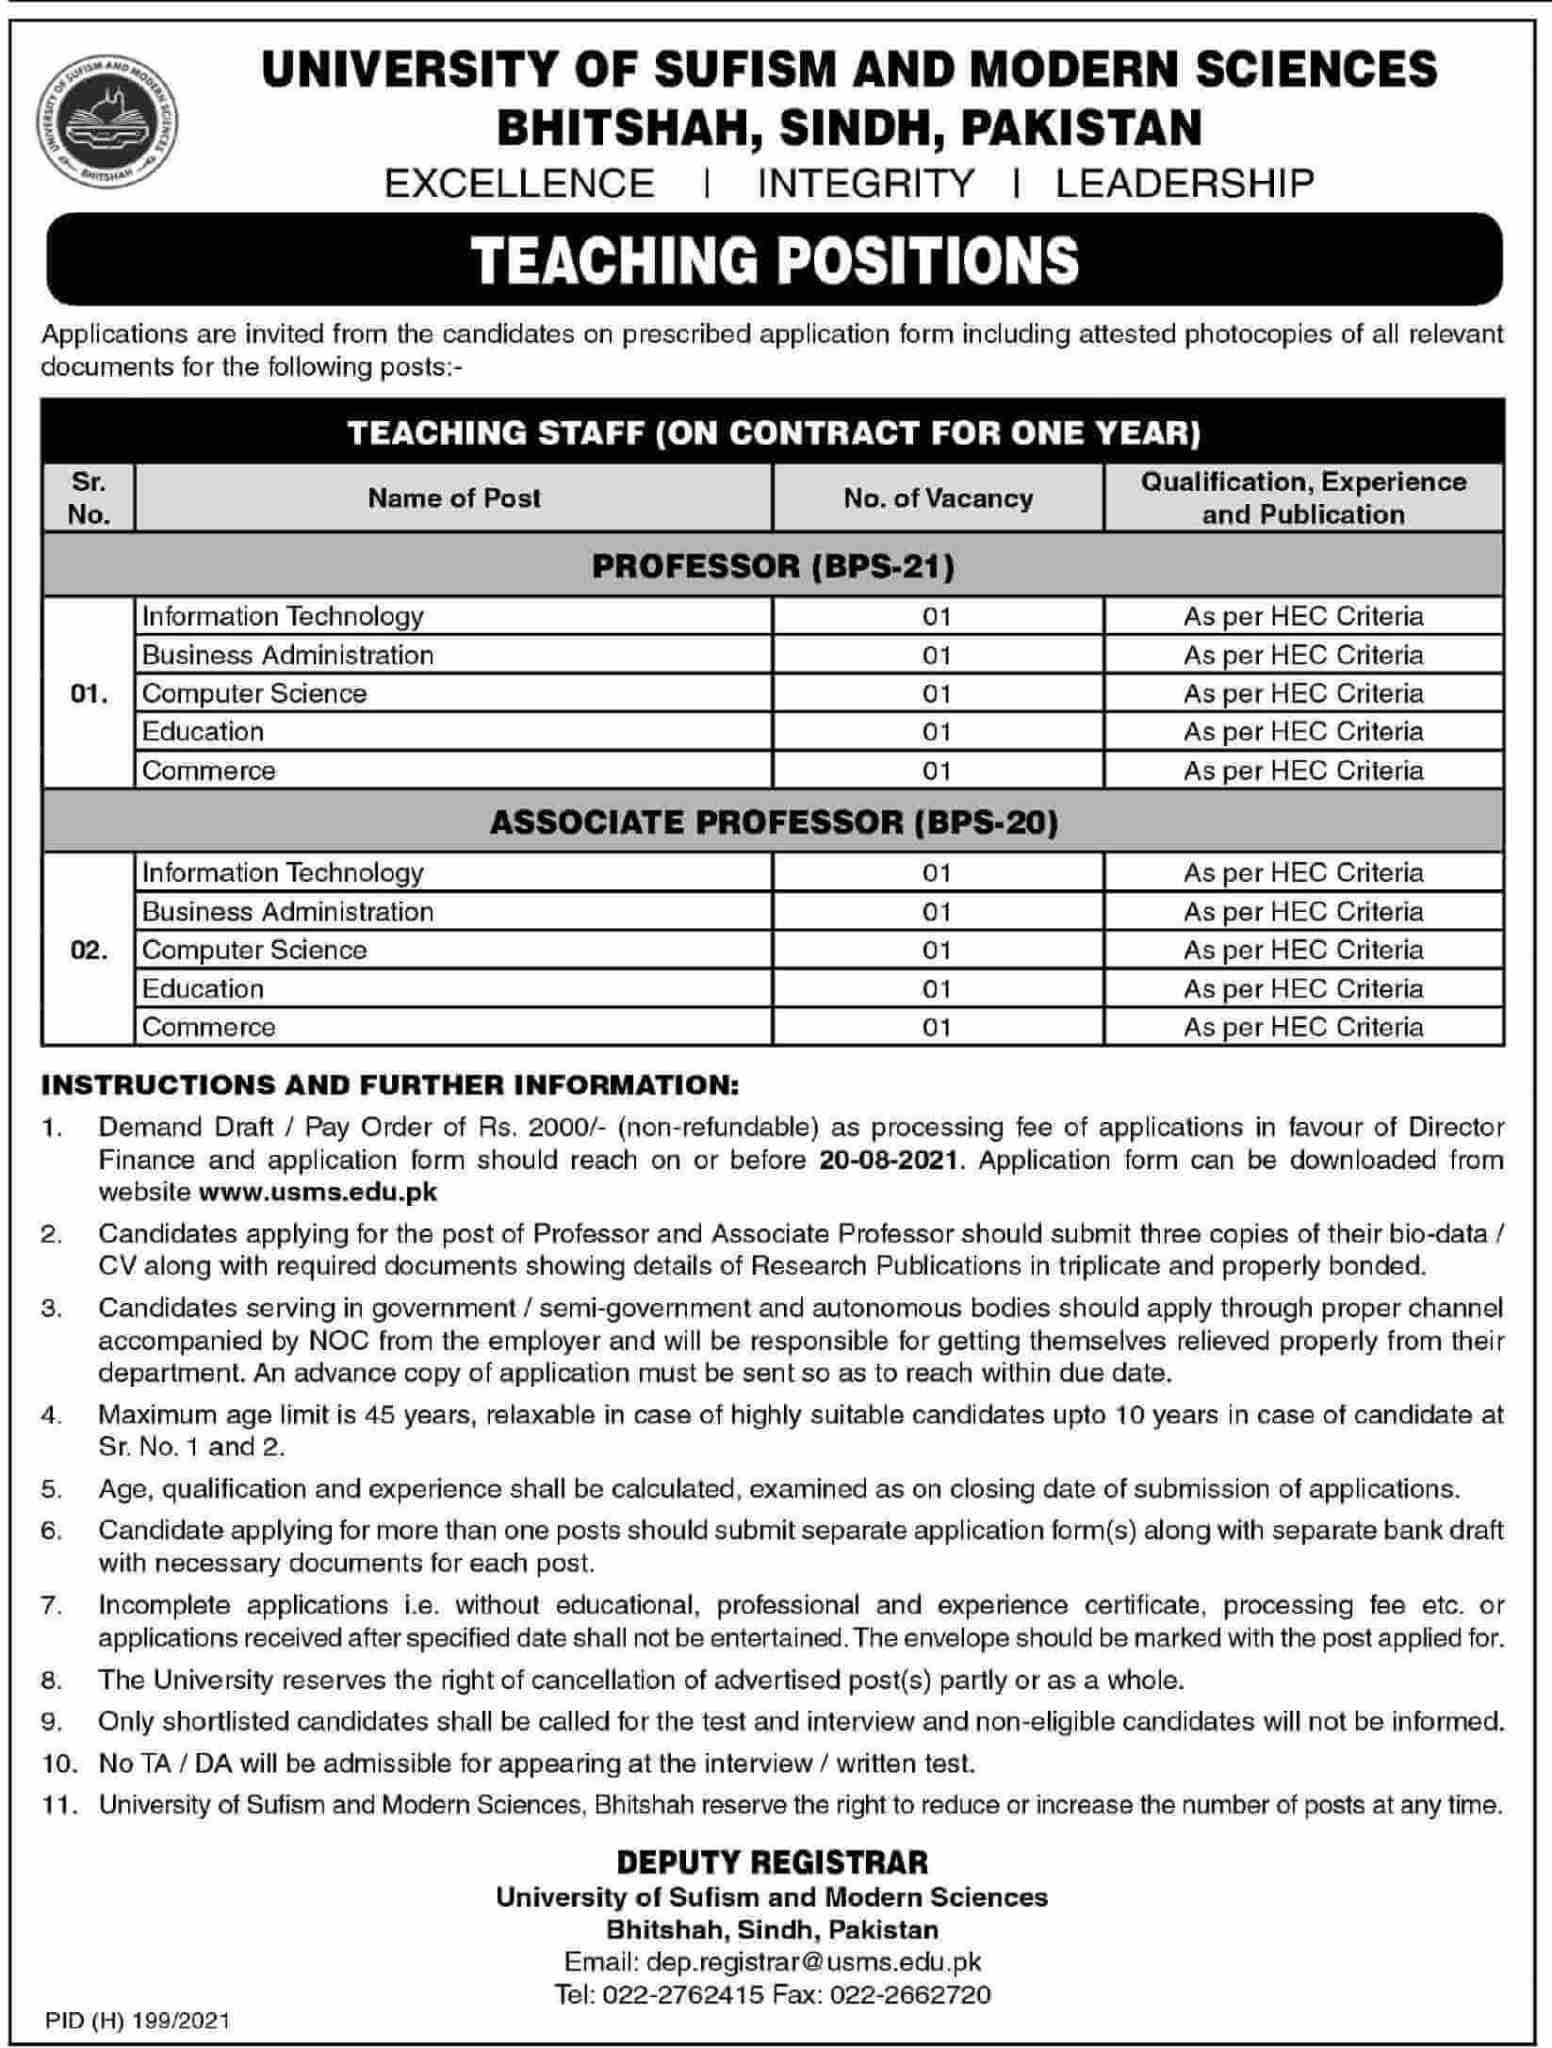 University of Sufism and Modern Sciences USMS Jobs 2021